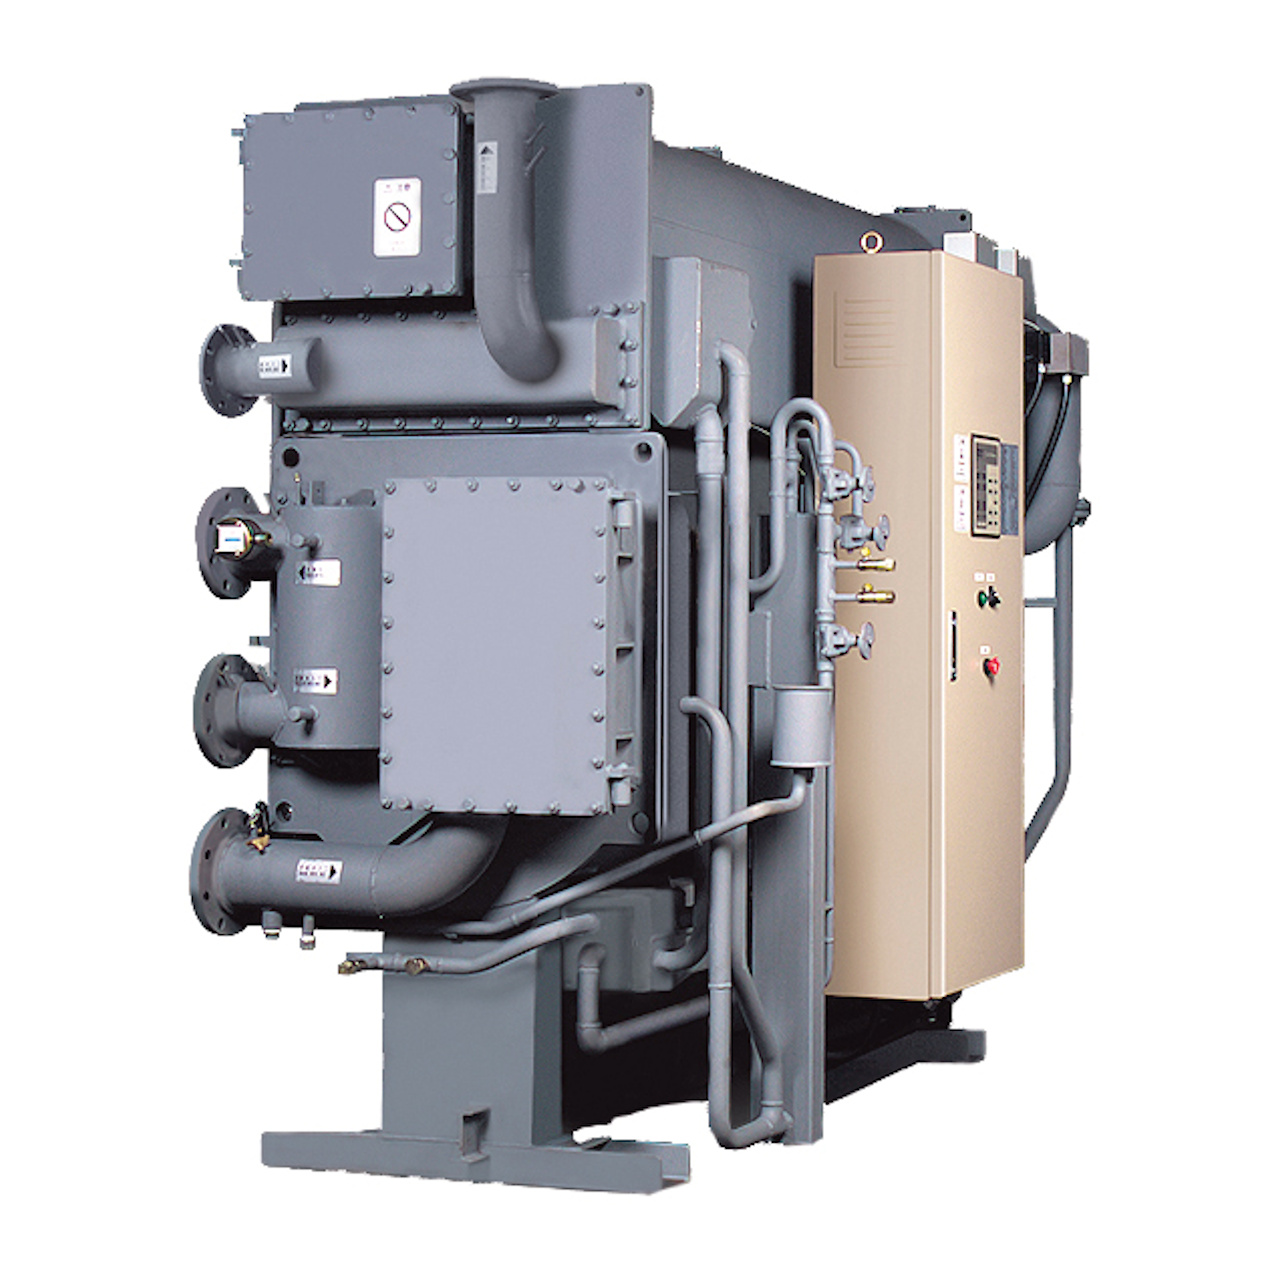 carrier-16LJ-absorption-chiller